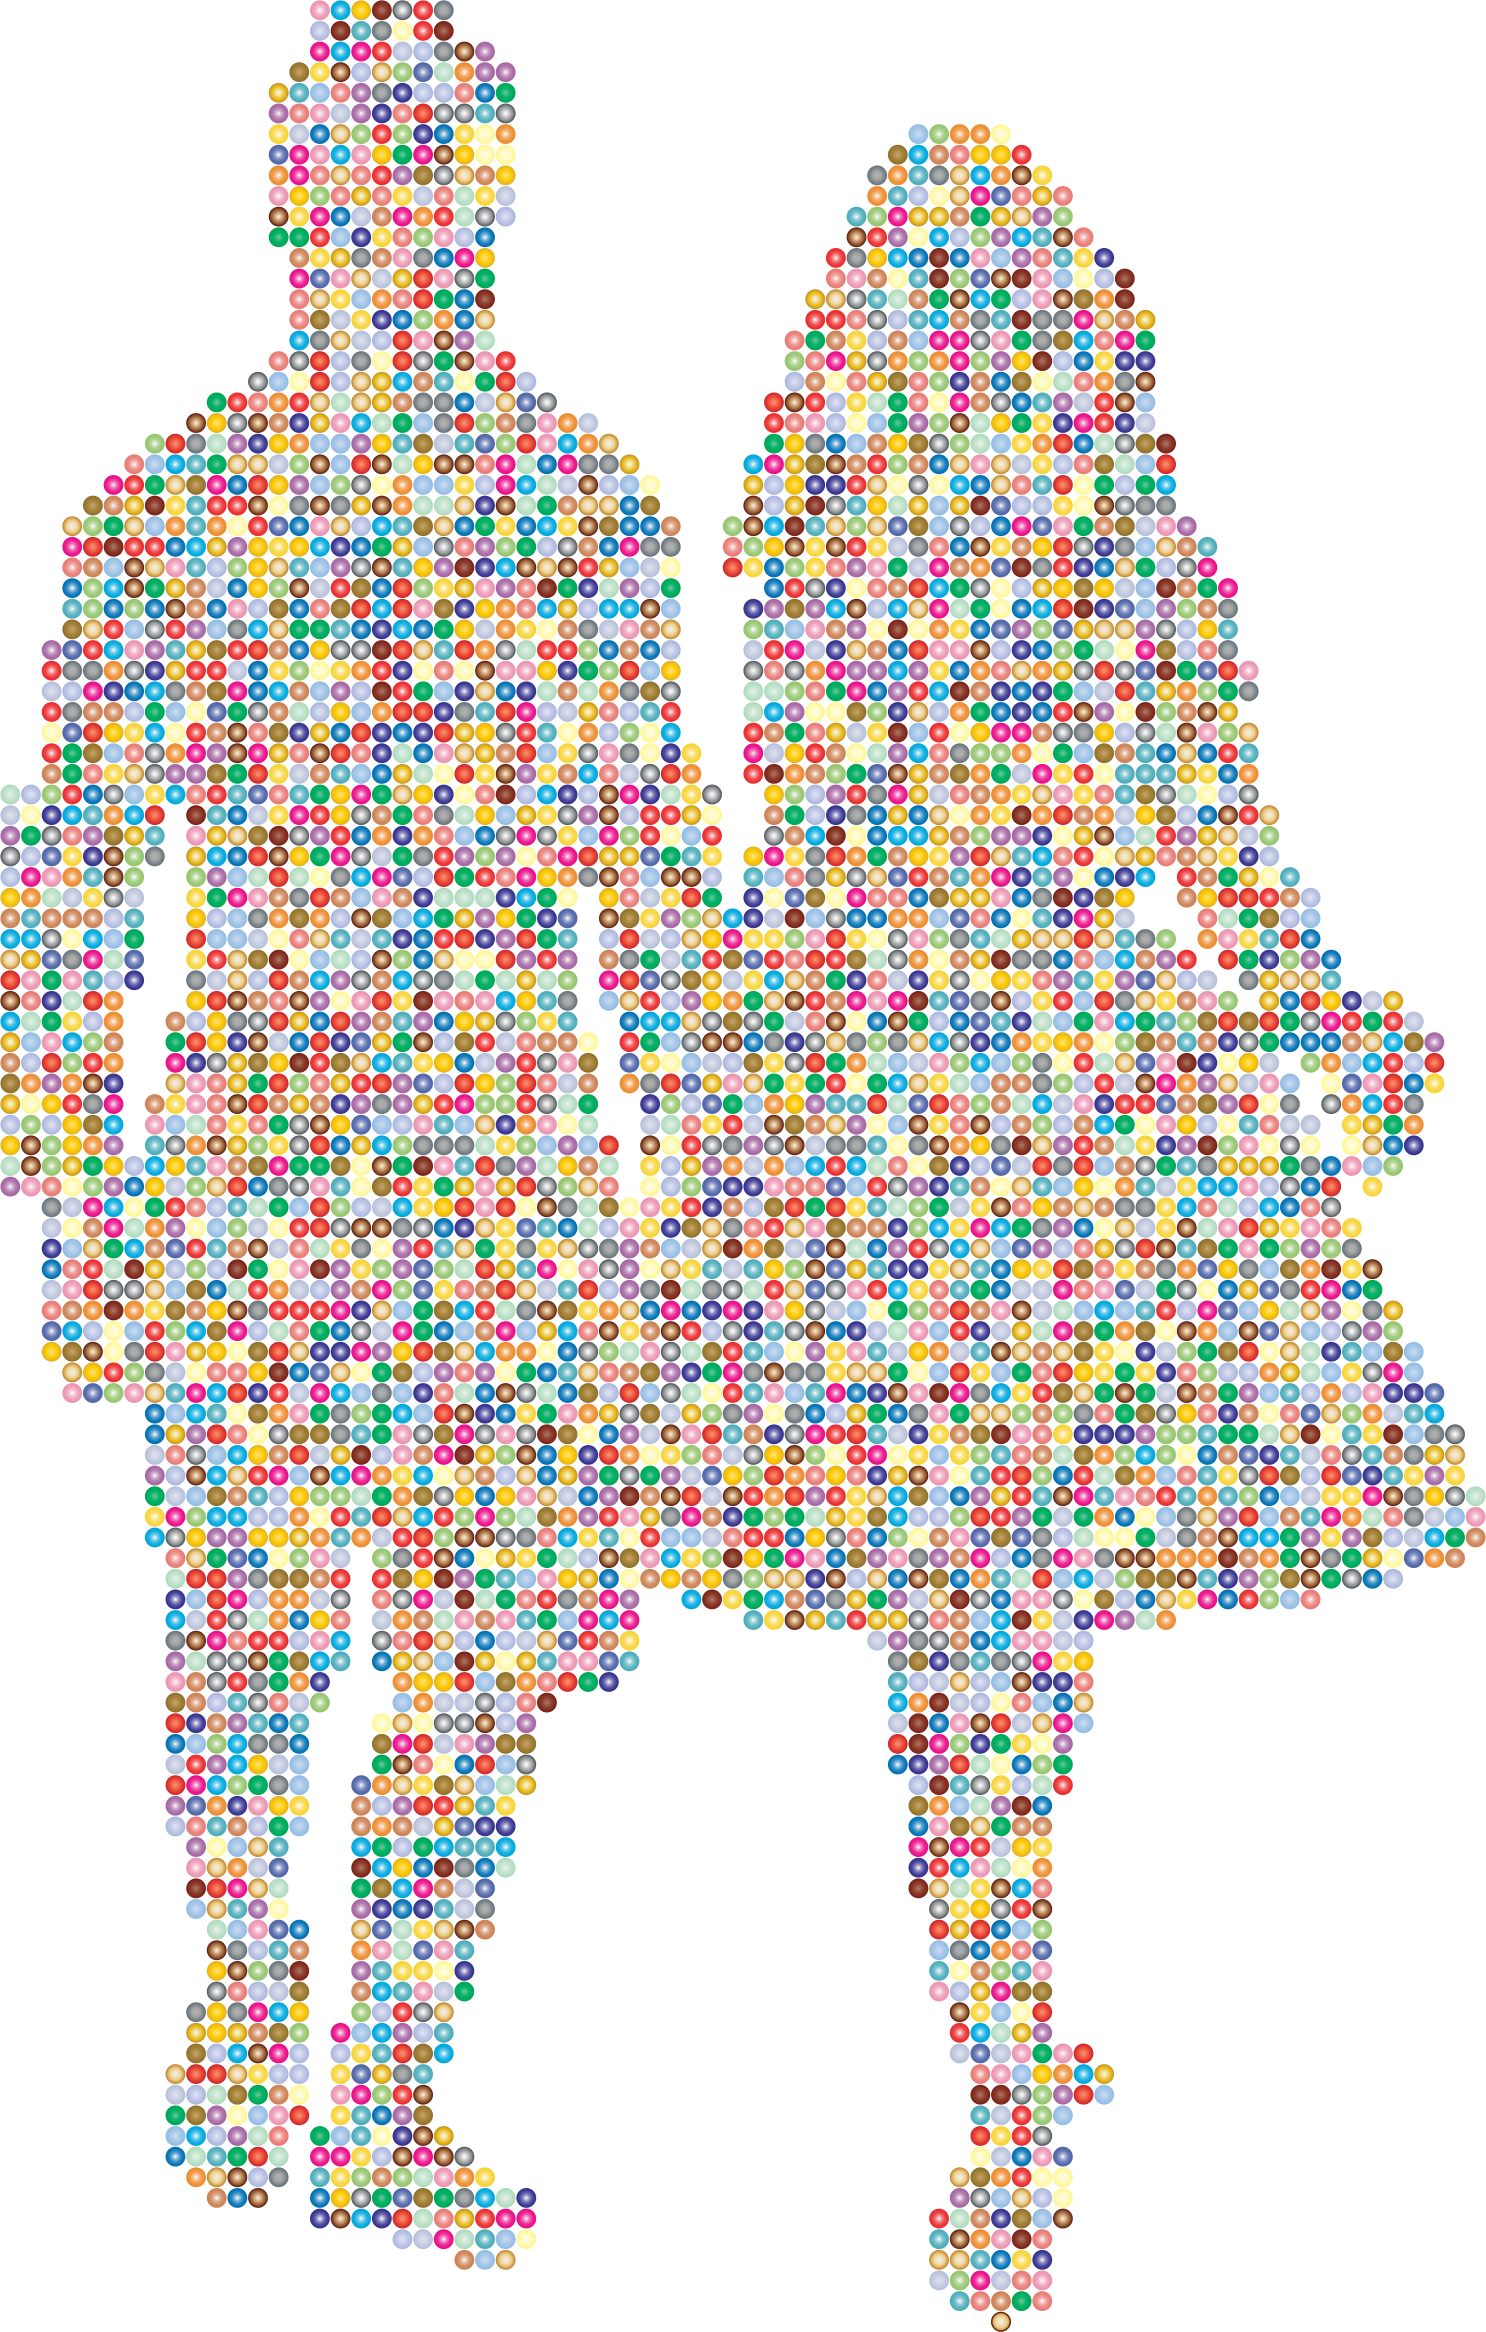 Prismatic Couple Holding Hands Silhouette 3 by GDJ